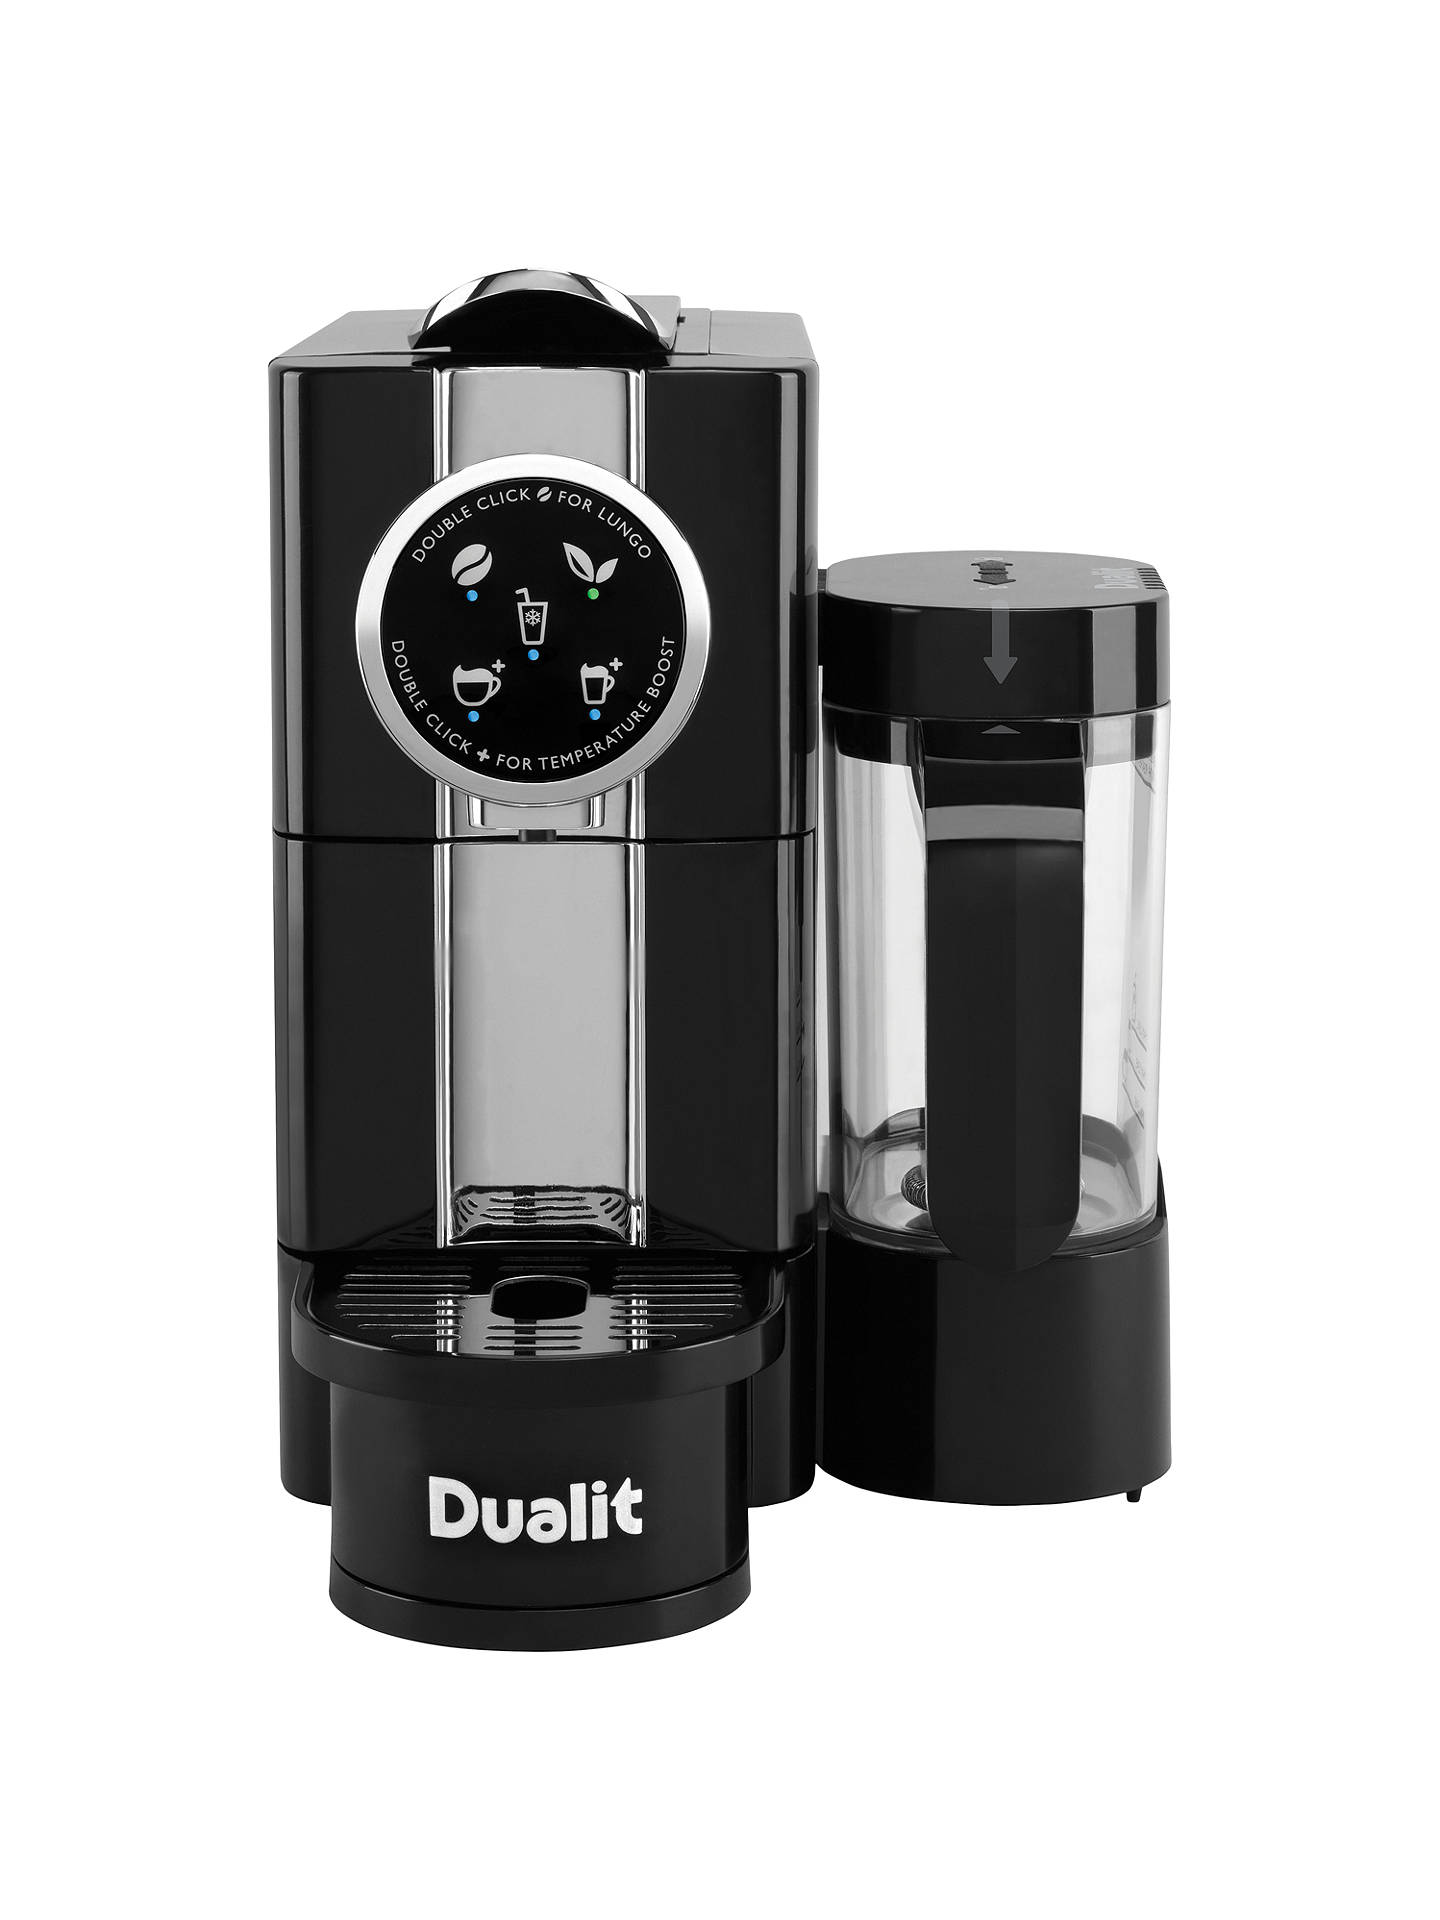 dualit 85180 cafe cino coffee capsule machine black at john lewis partners. Black Bedroom Furniture Sets. Home Design Ideas